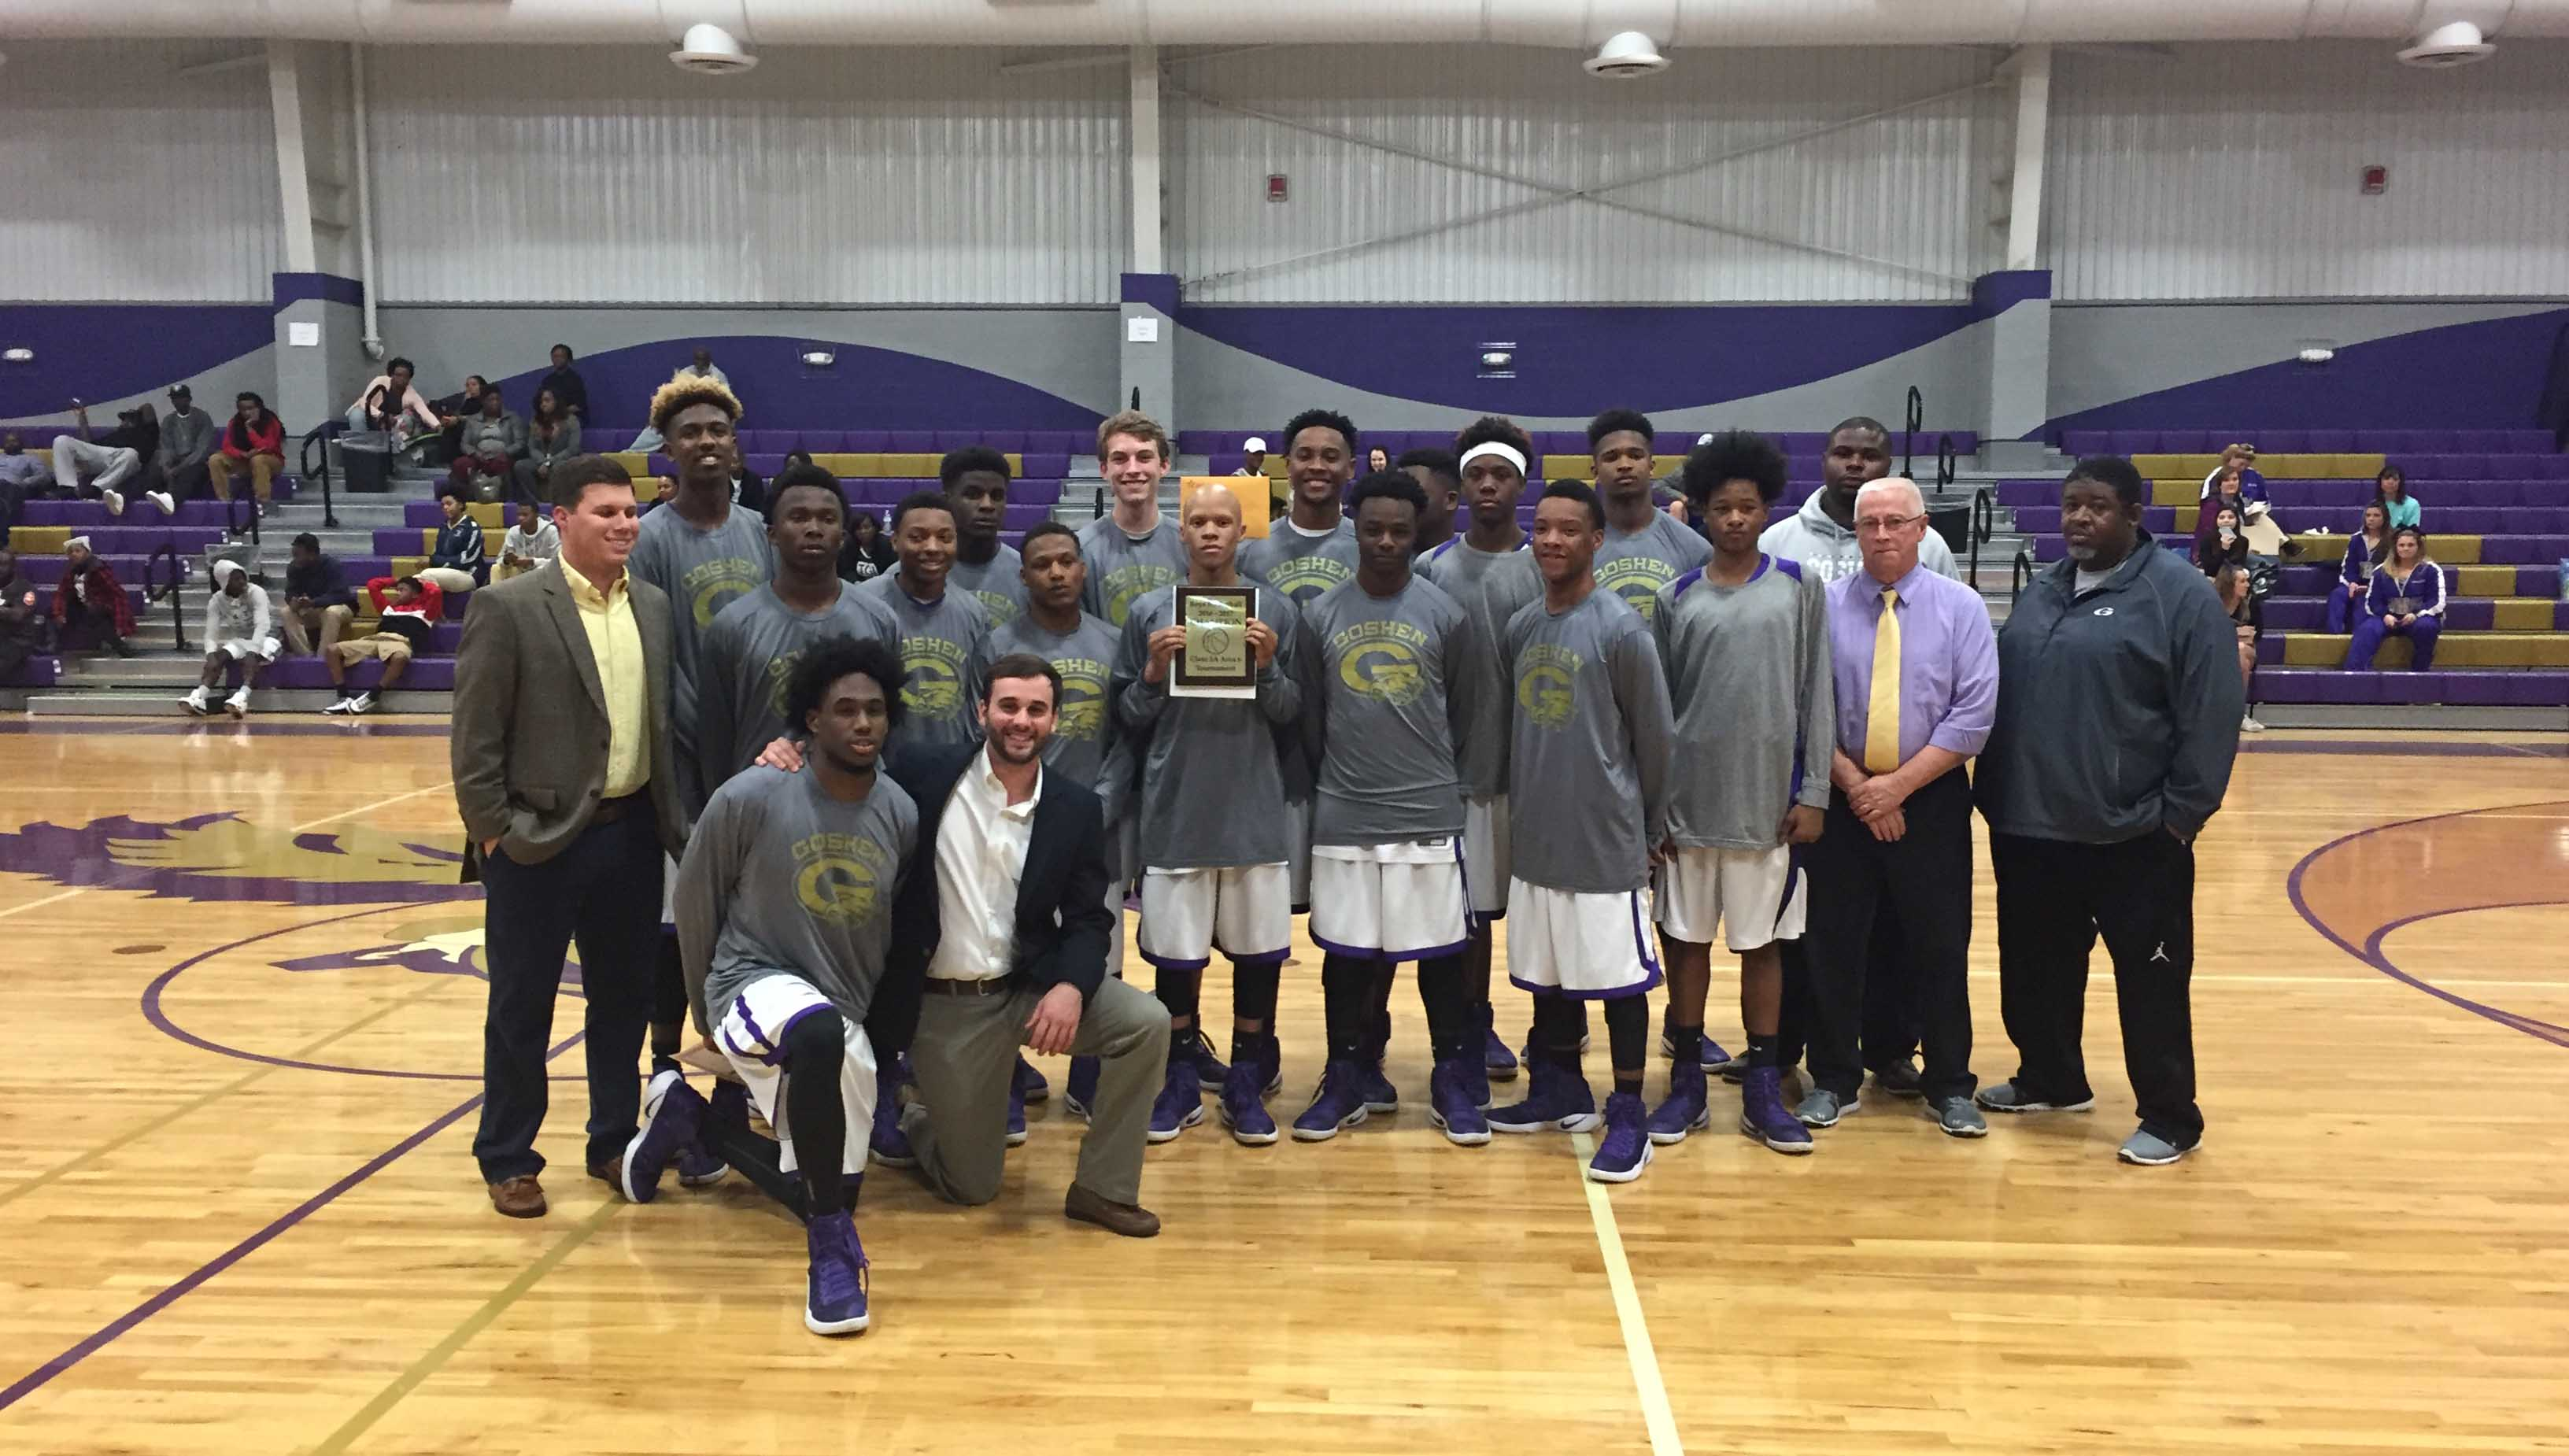 Photo/mike hensley The Goshen Eagles claimed the Class 2A Area 6 championship with a 54-50 win over the Calhoun Tigers on Thursday night. The Eagles will host the sub-regional tournament beginnin on Tuesday at 6 p.m.